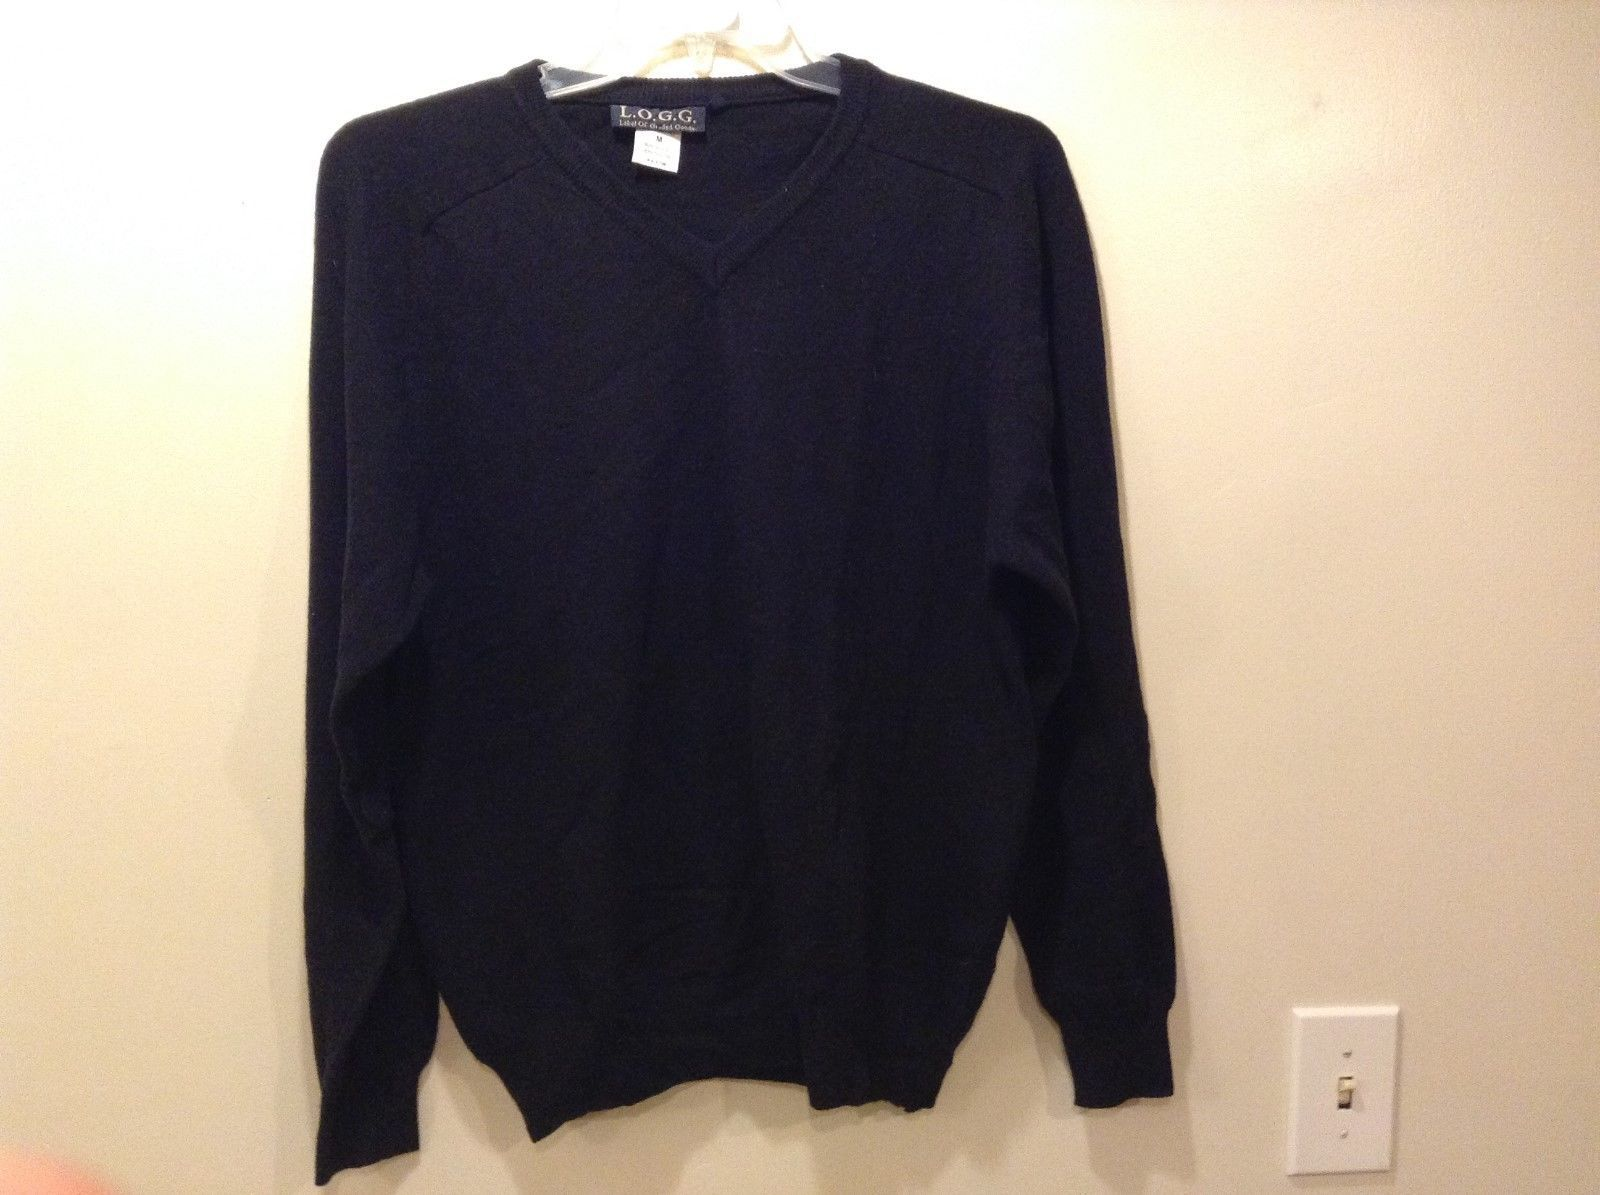 L.O.G.G. Ladies Black V-neck Sweater Sz M